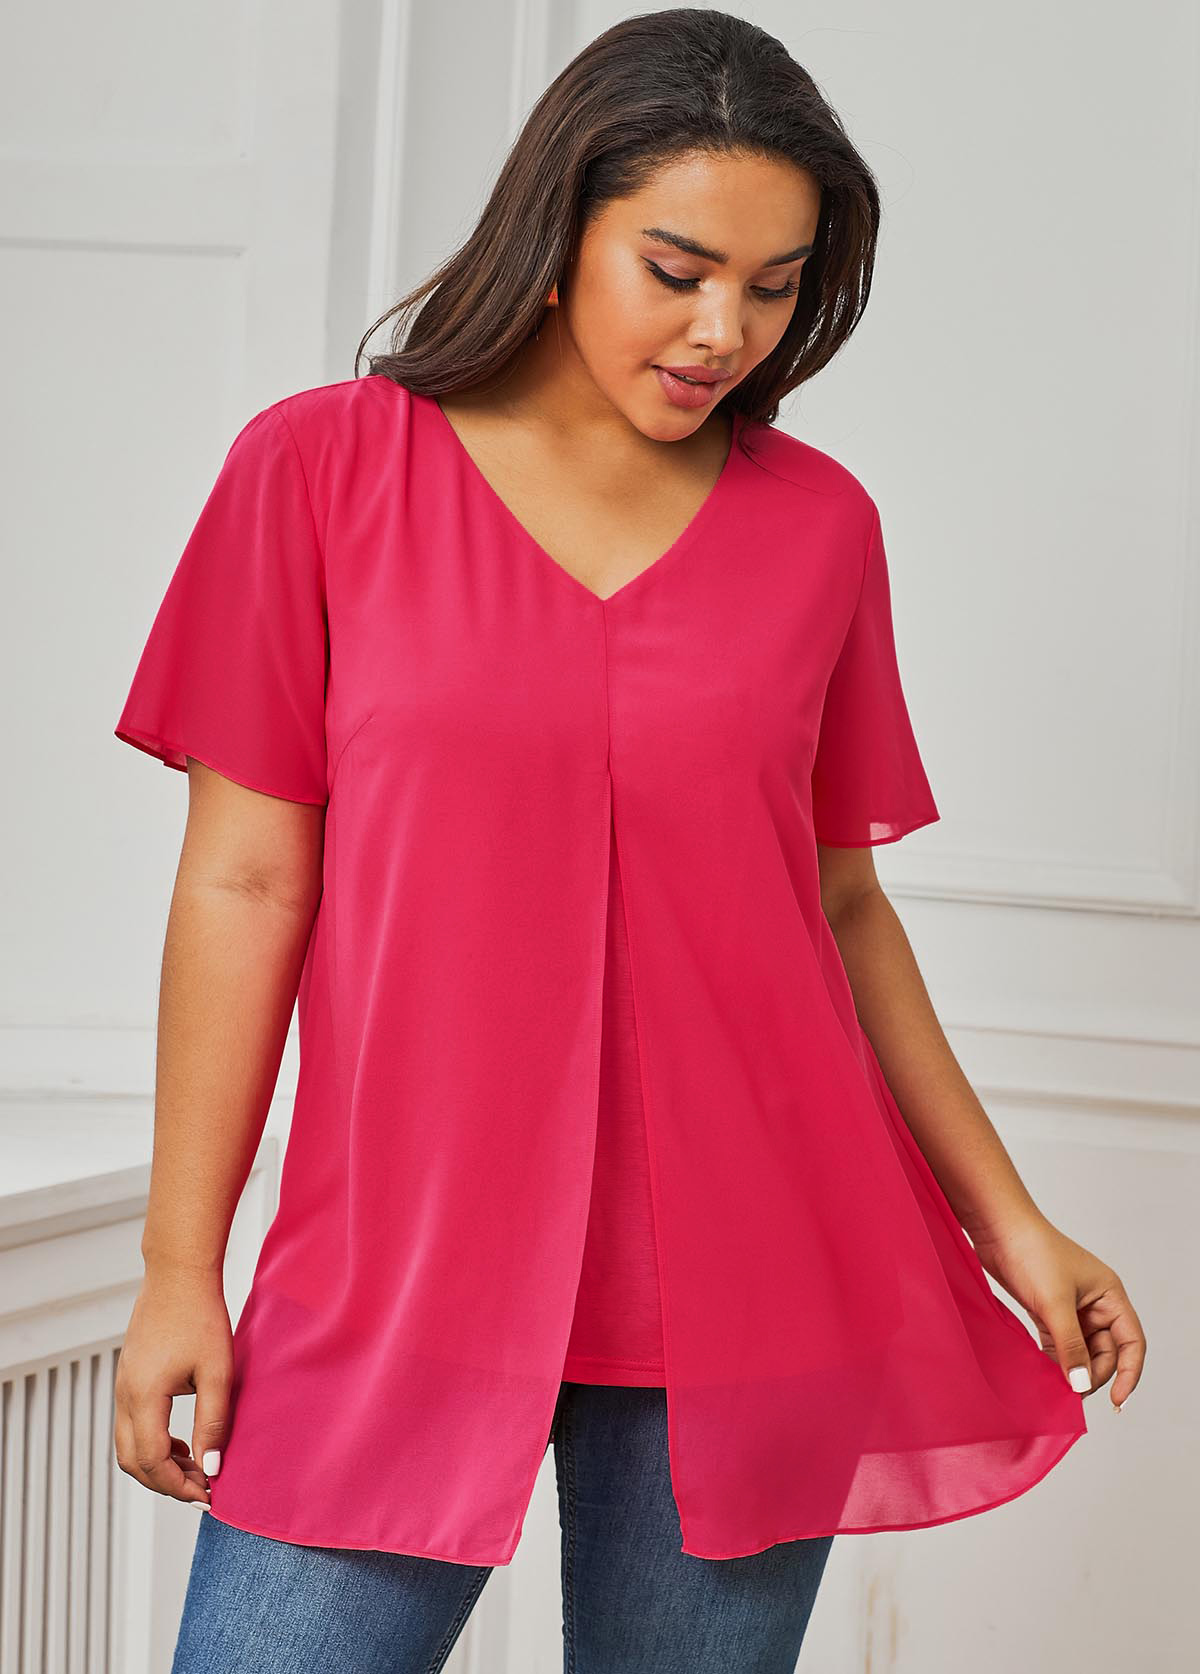 V Neck Short Sleeve Pink Plus Size T Shirt